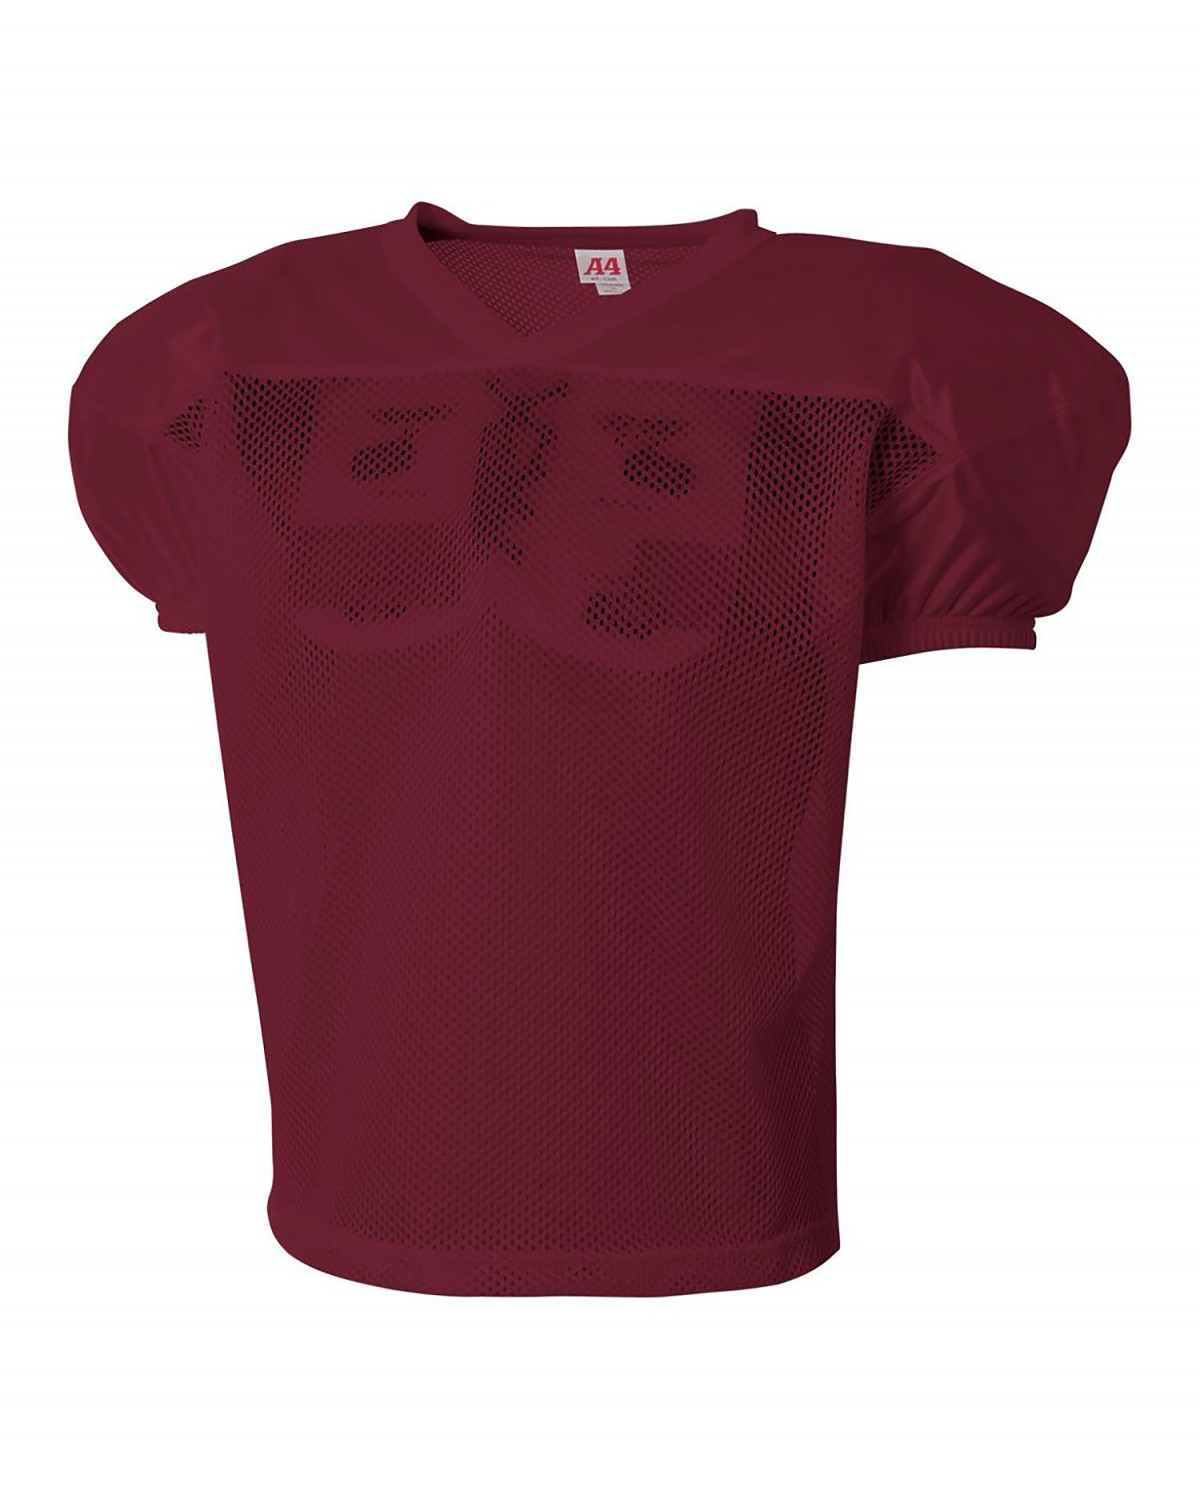 BG1481 Badger Sport Steel Heather/Maroon